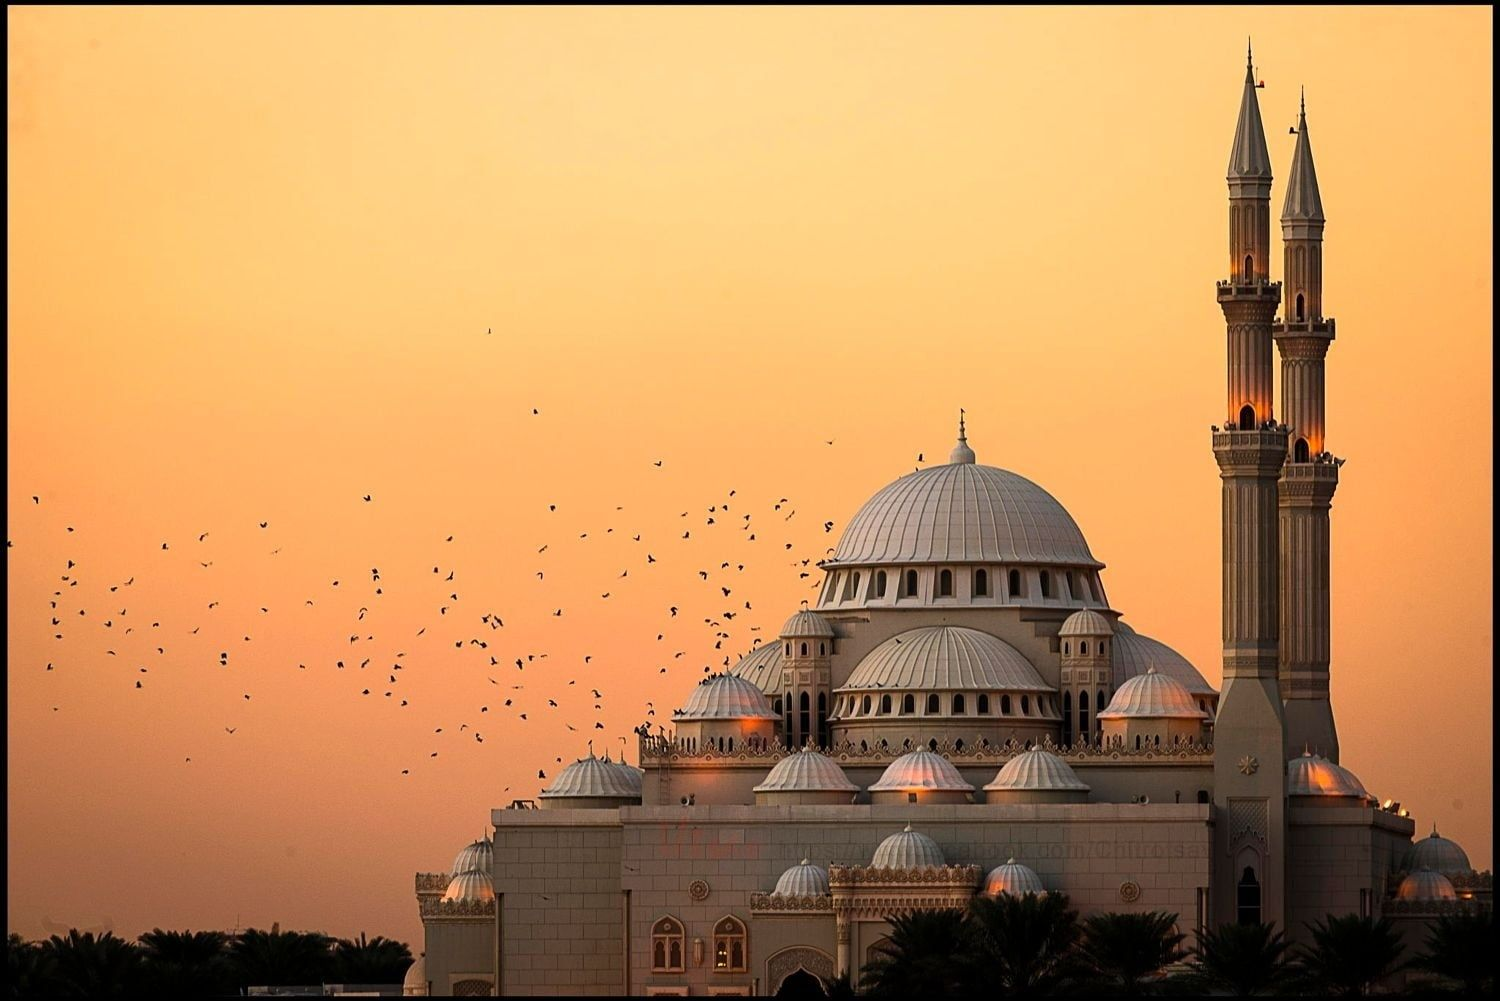 White And Brown Mosque Photography Nature Landscape Mosque Architecture Islam Flying Birds Suns Mosque Photography Architecture Wallpaper Architecture